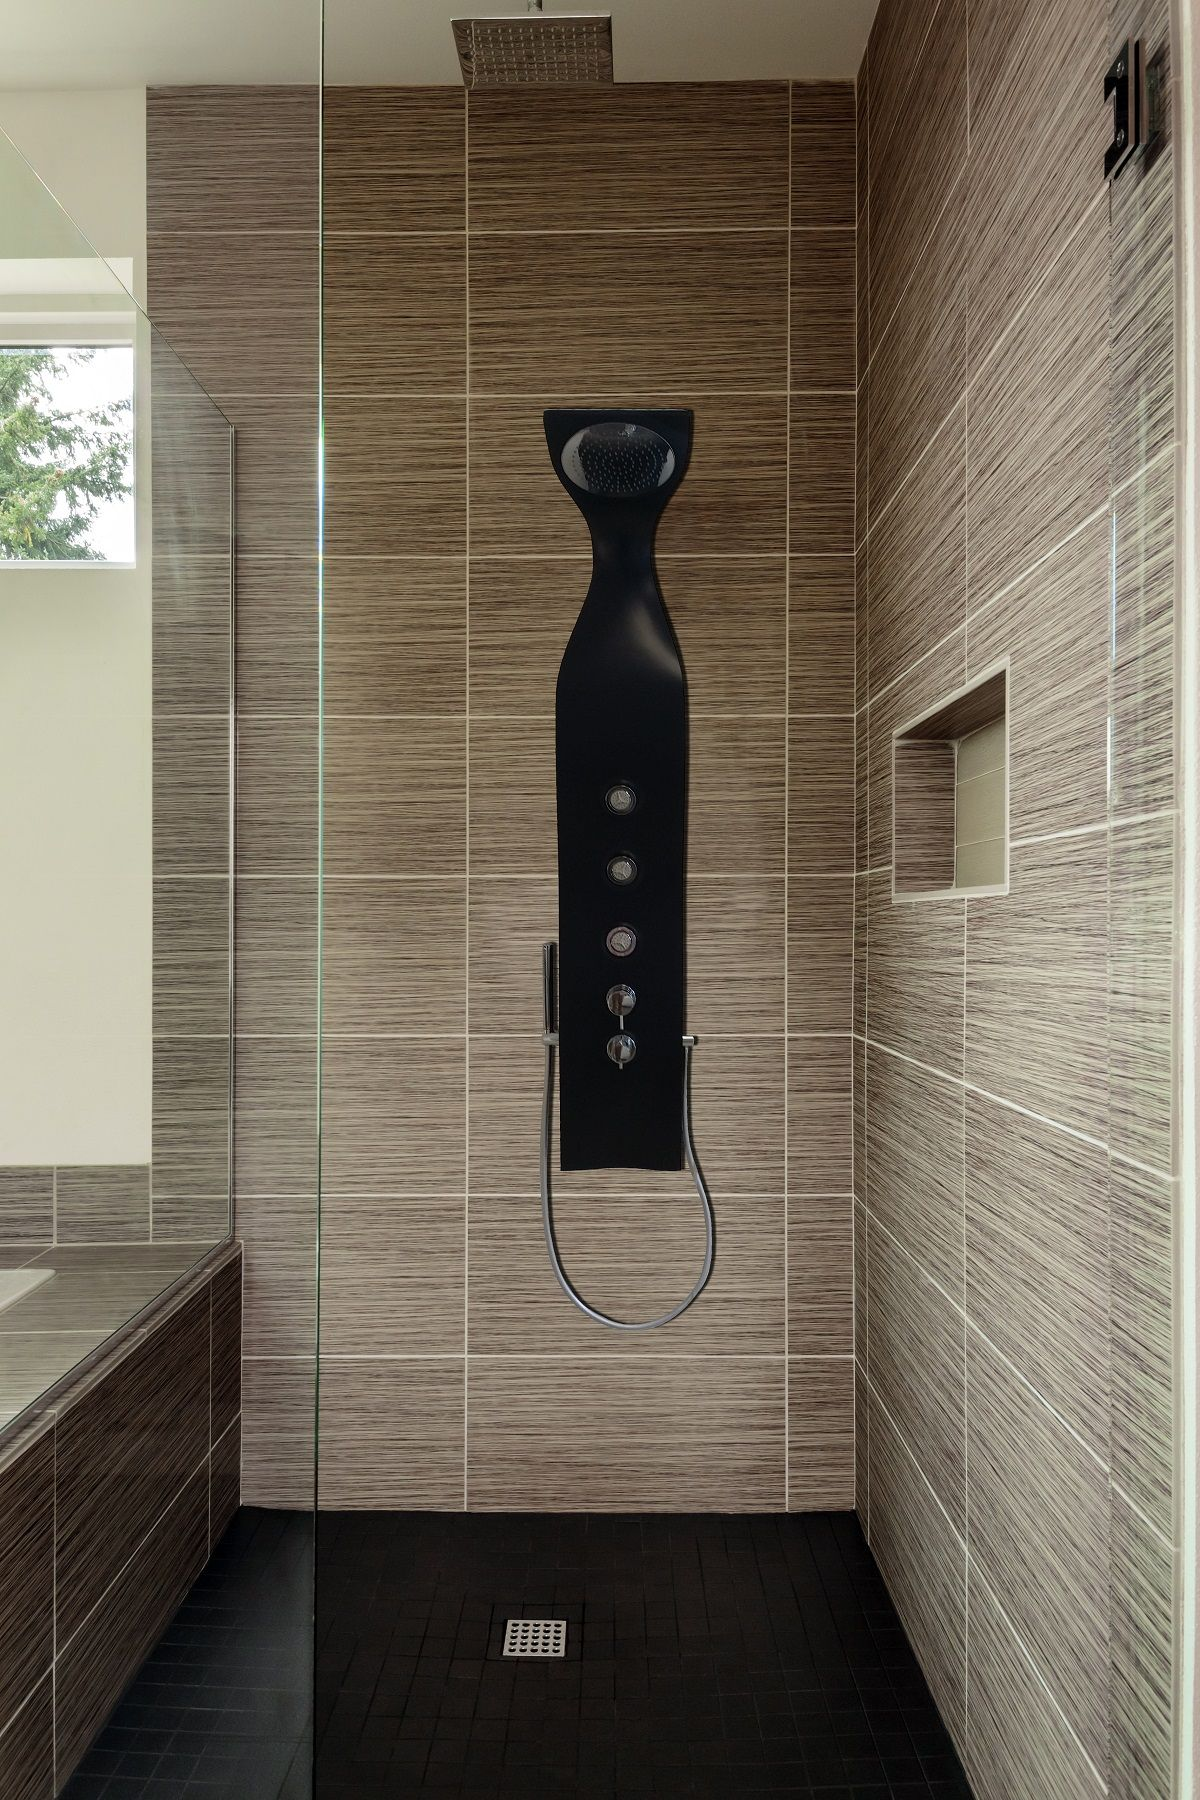 Aquatica Elise Wall Mounted Solid Surface Shower Panel In Black Matte Shower Panels Bathroom Shower Panels Shower Systems